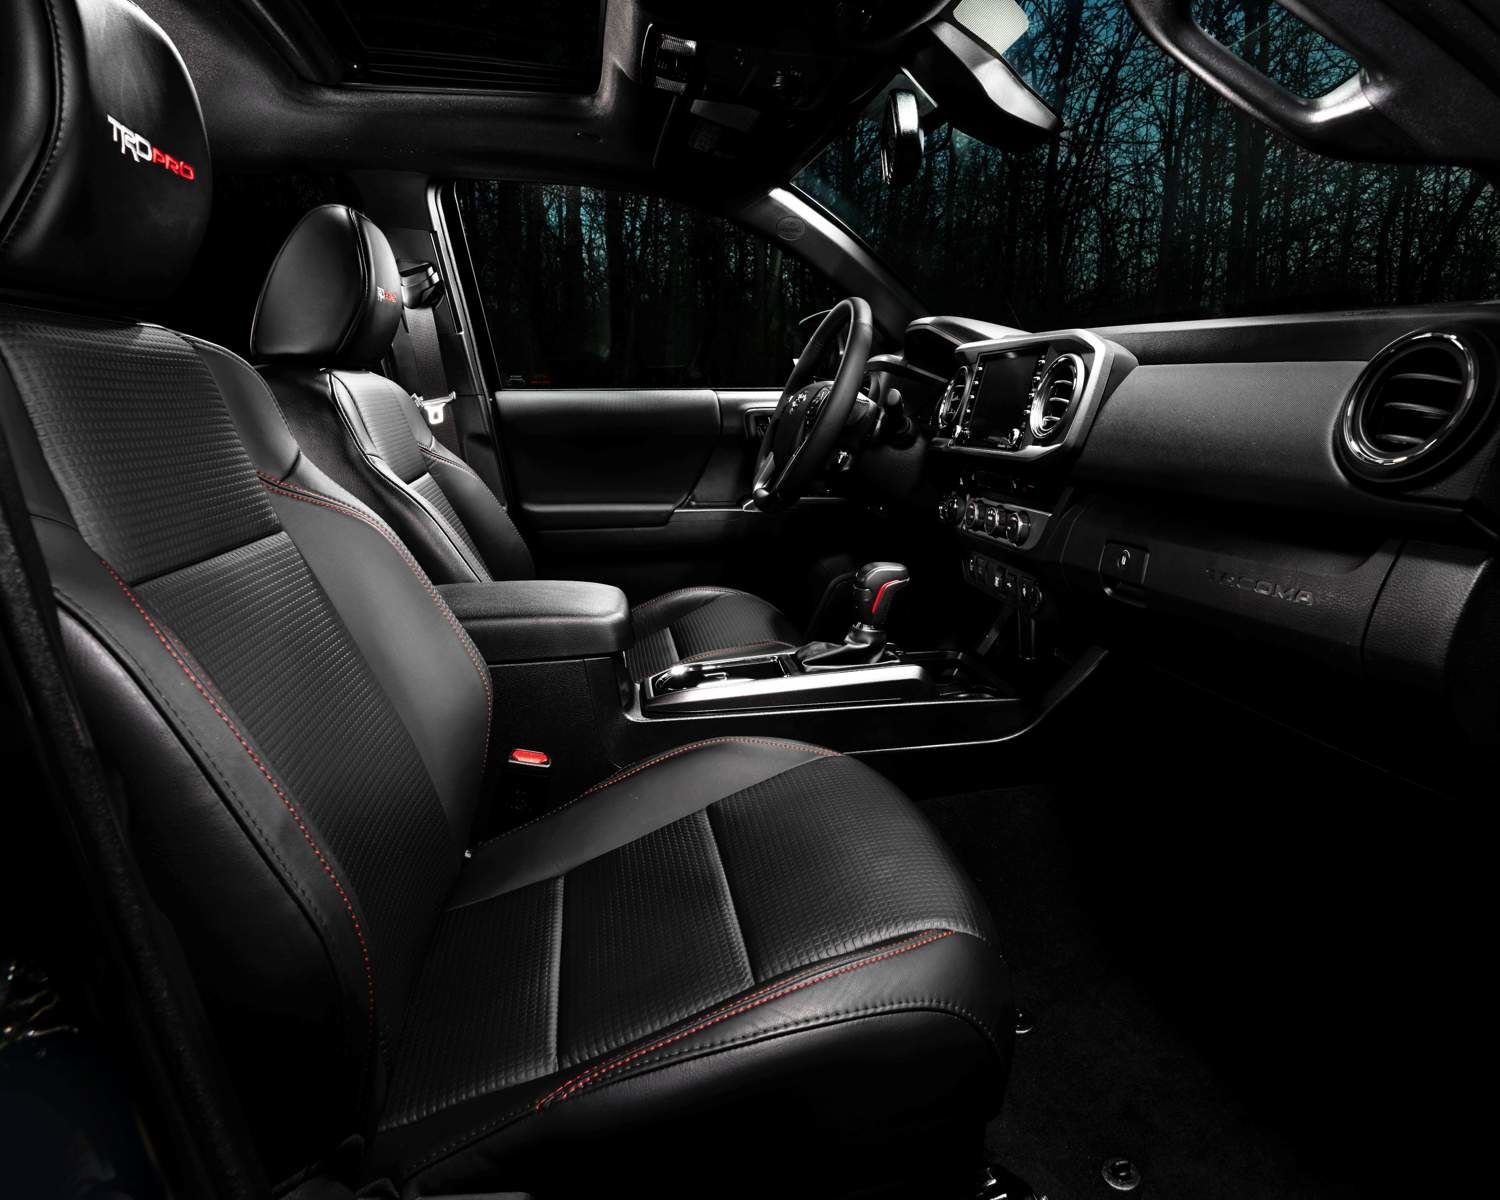 Tacoma TRD Pro Interior shown in Black Leather